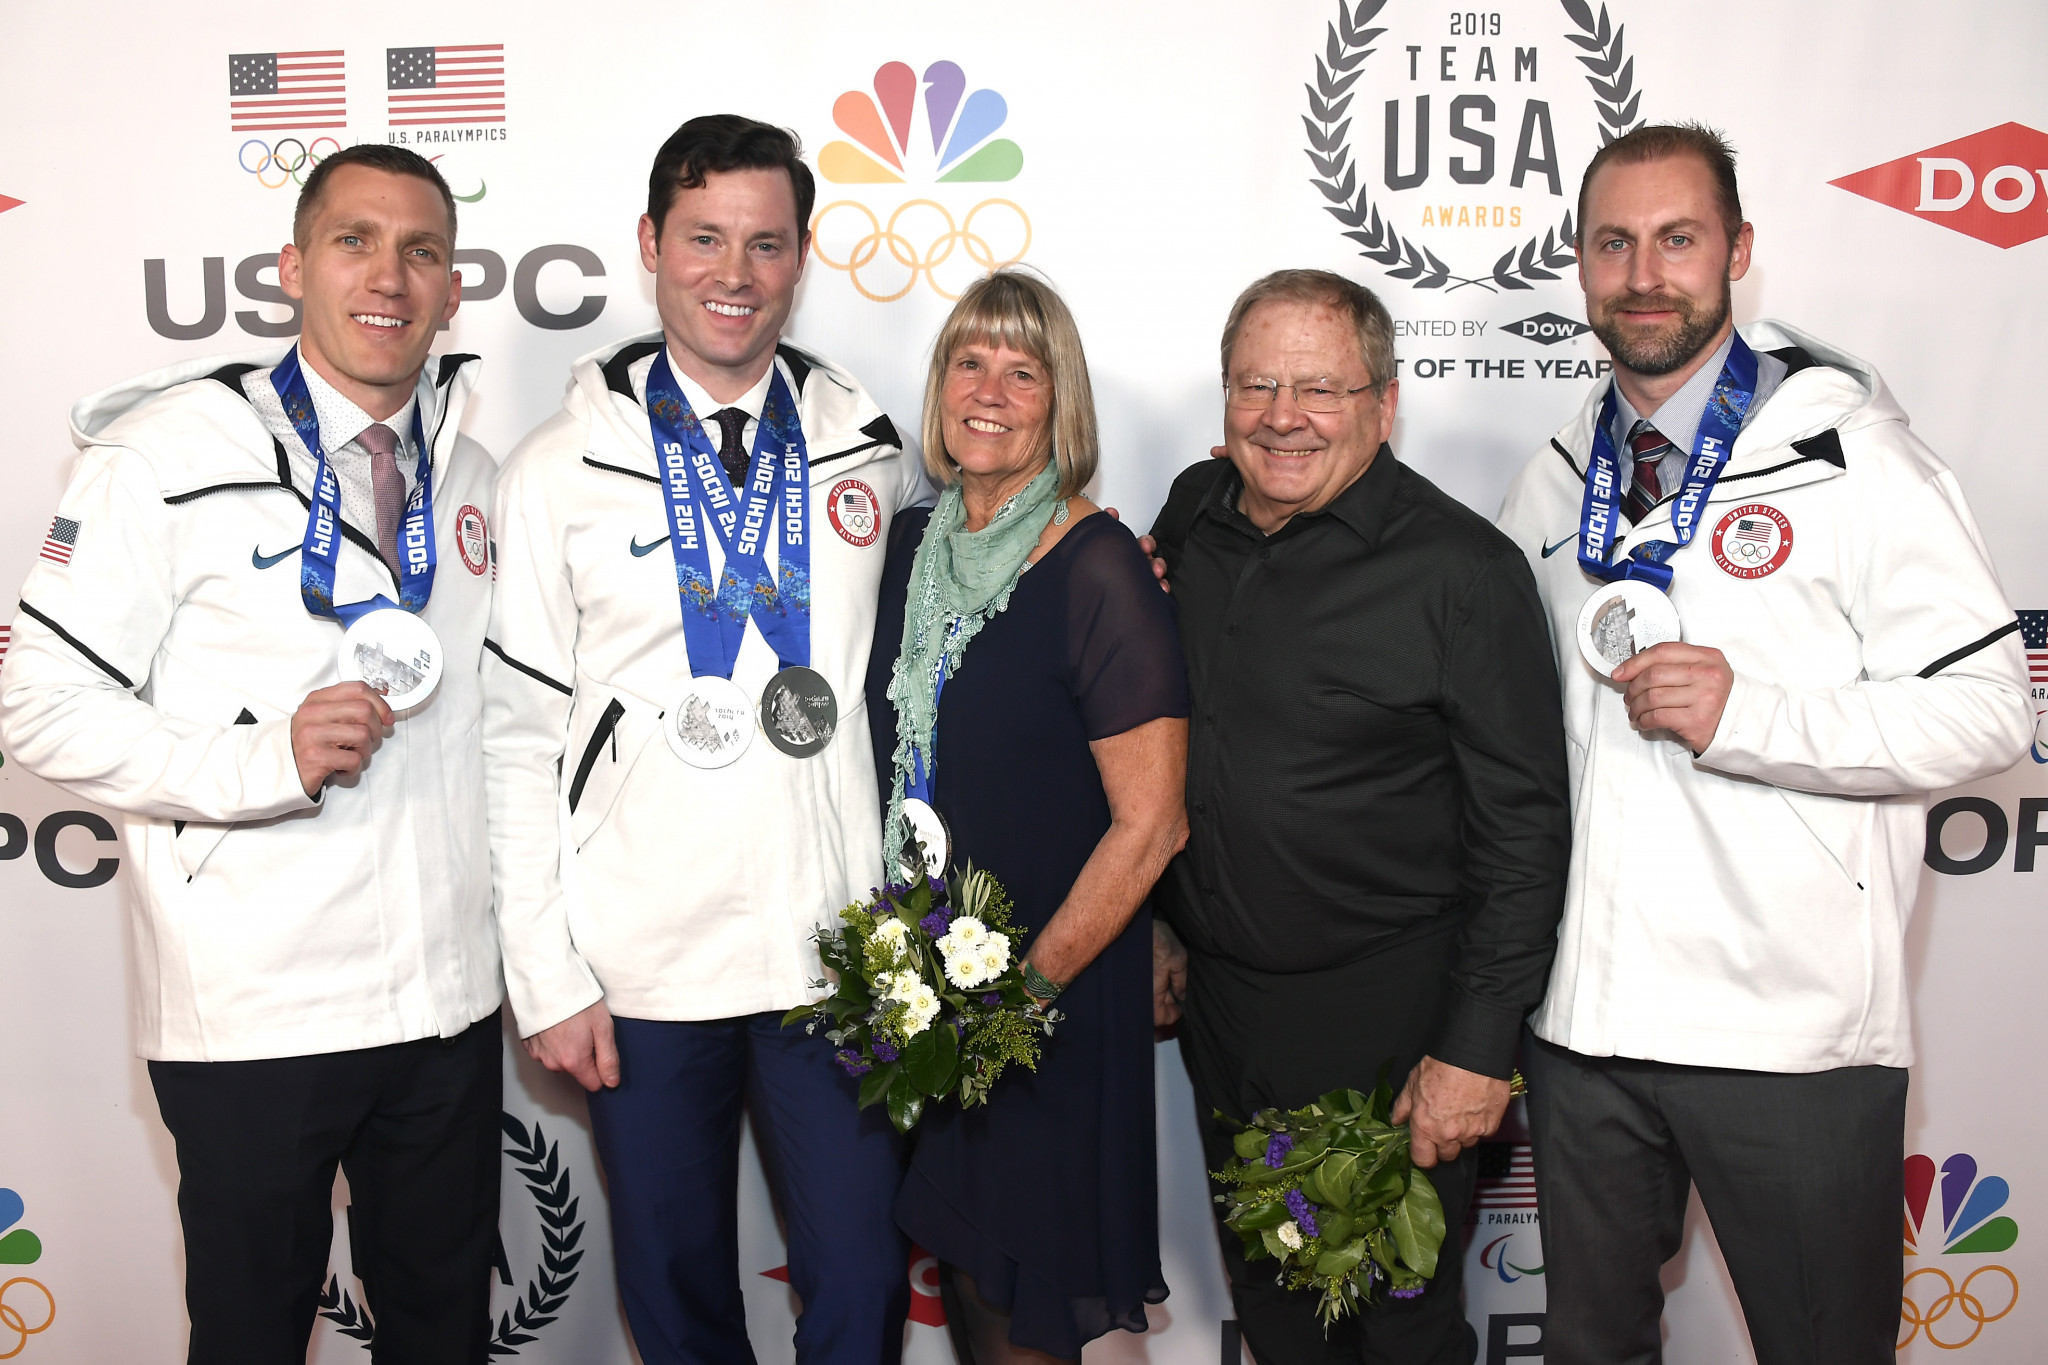 Family of late Steven Holcomb receive Olympic bobsleigh silver medals at Team USA awards